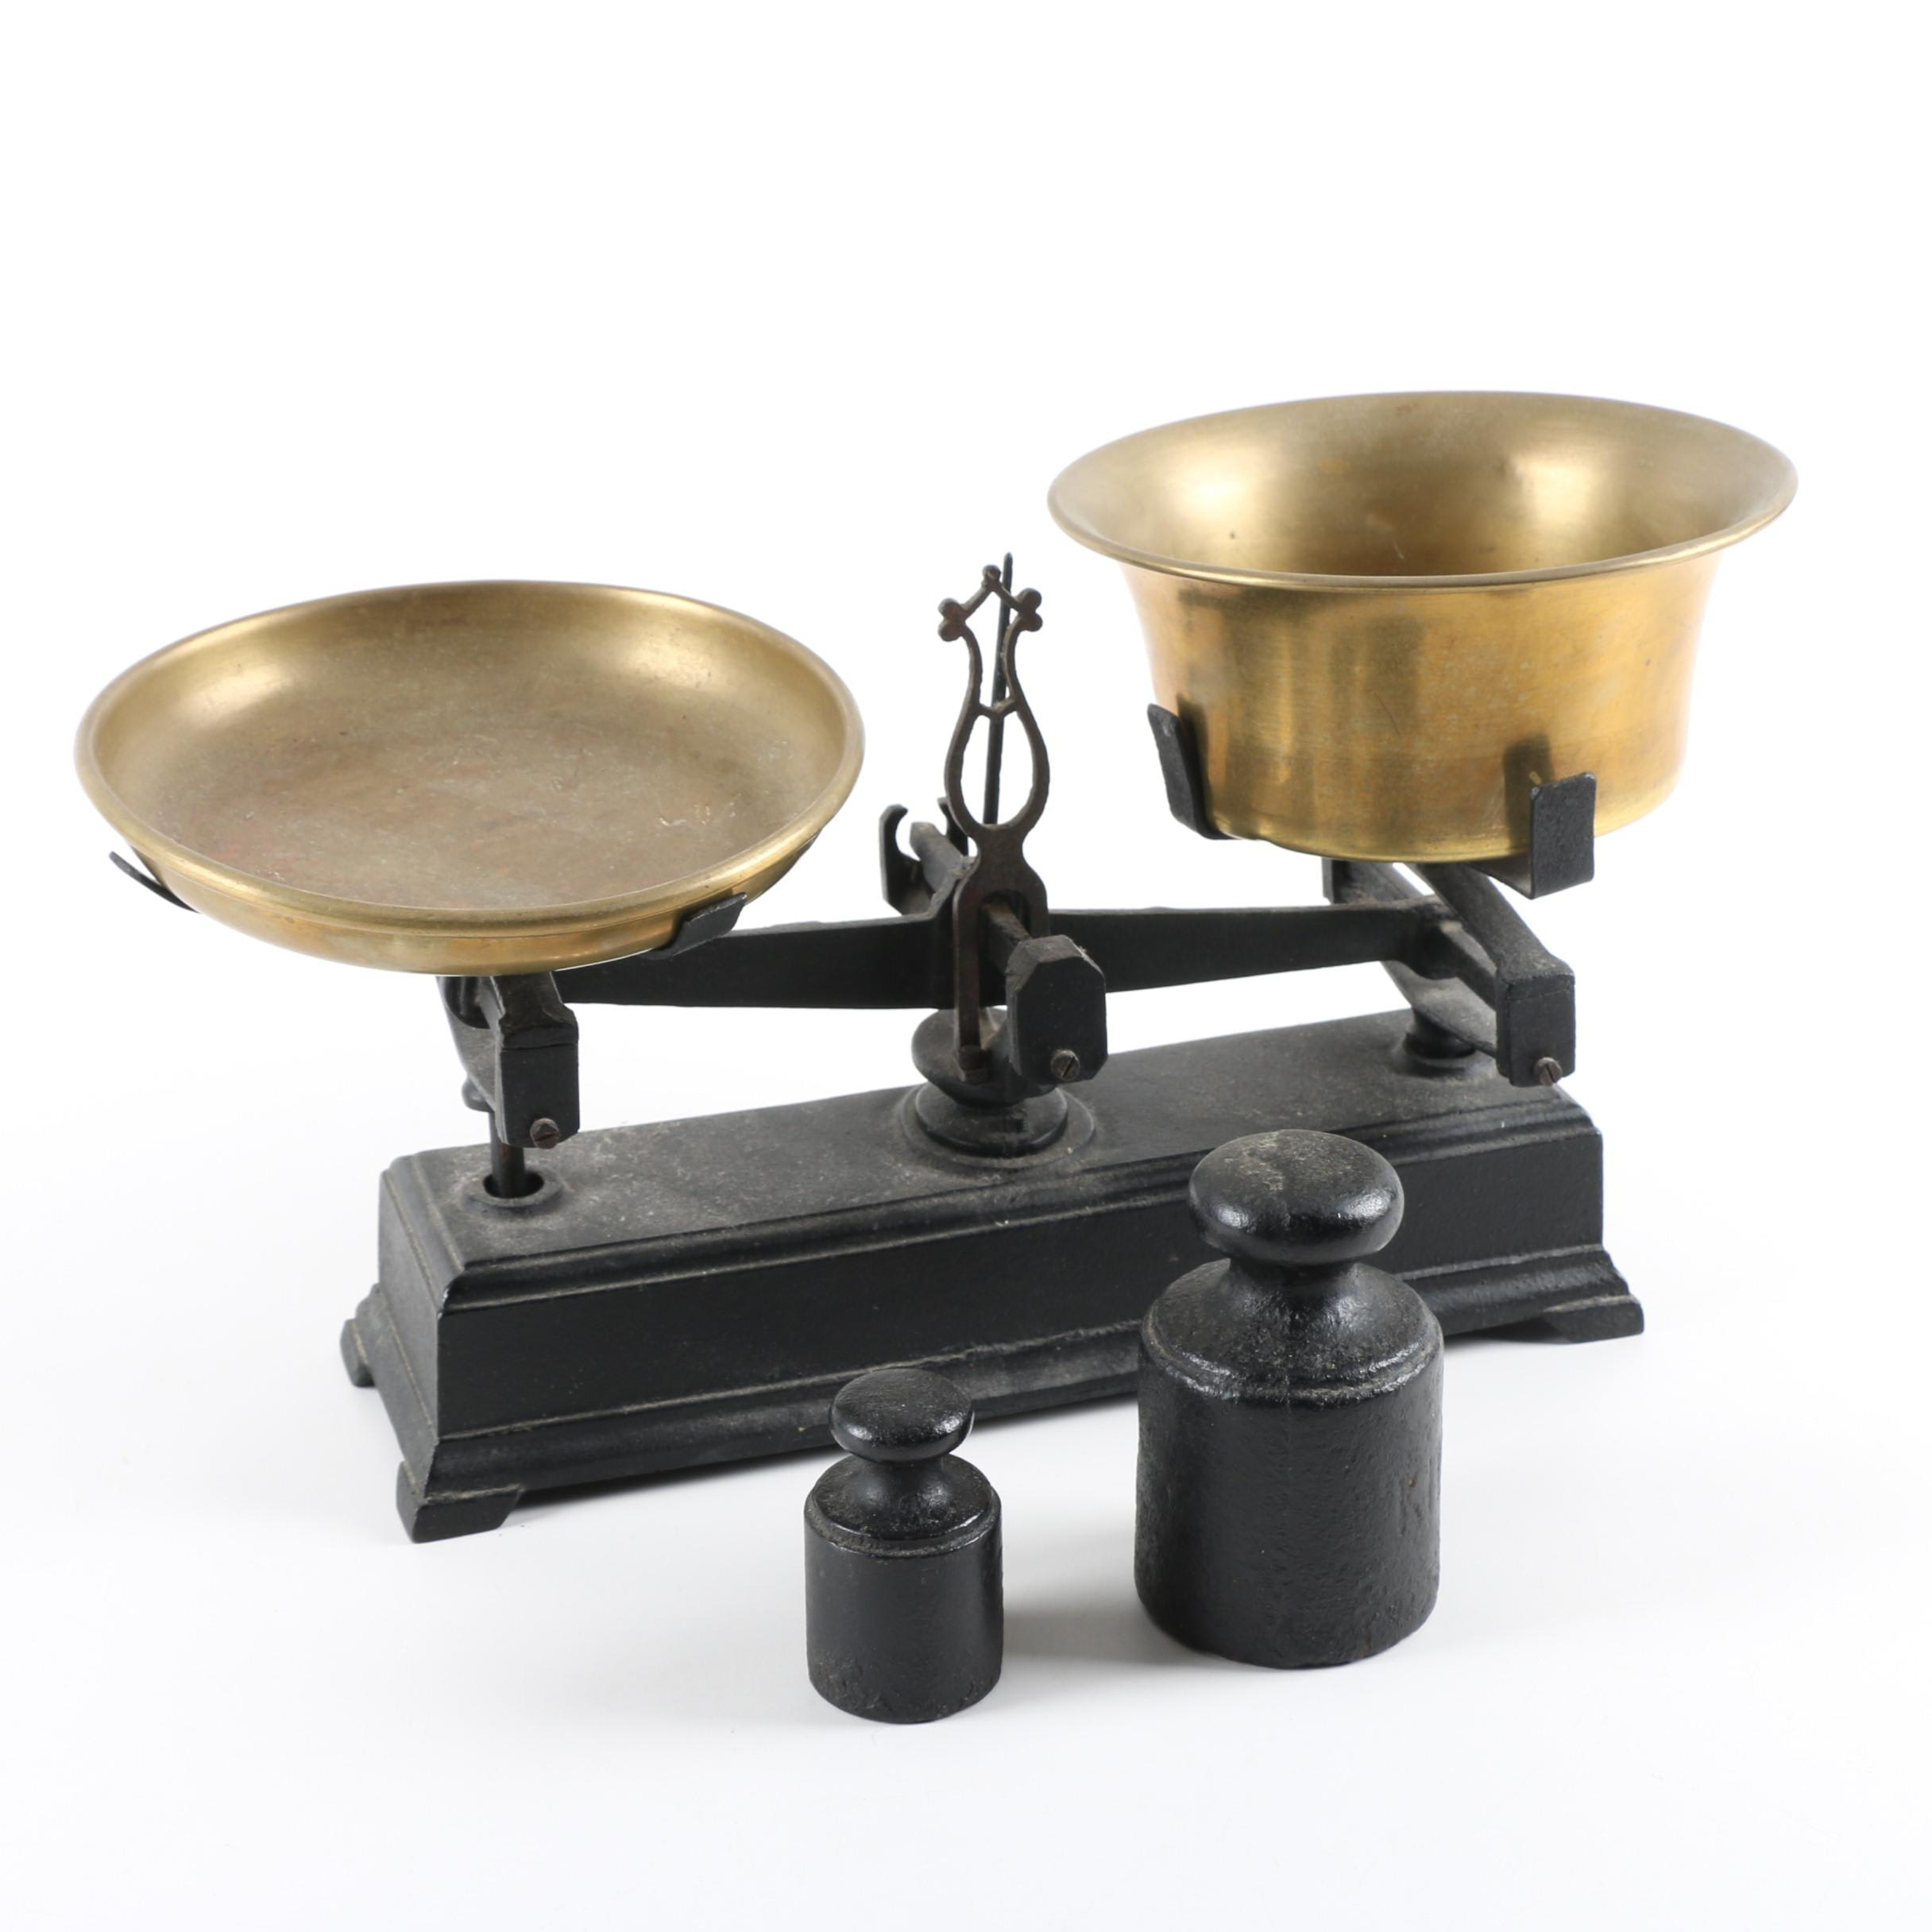 Antique Brass and Cast Iron Balance Scale With Weights